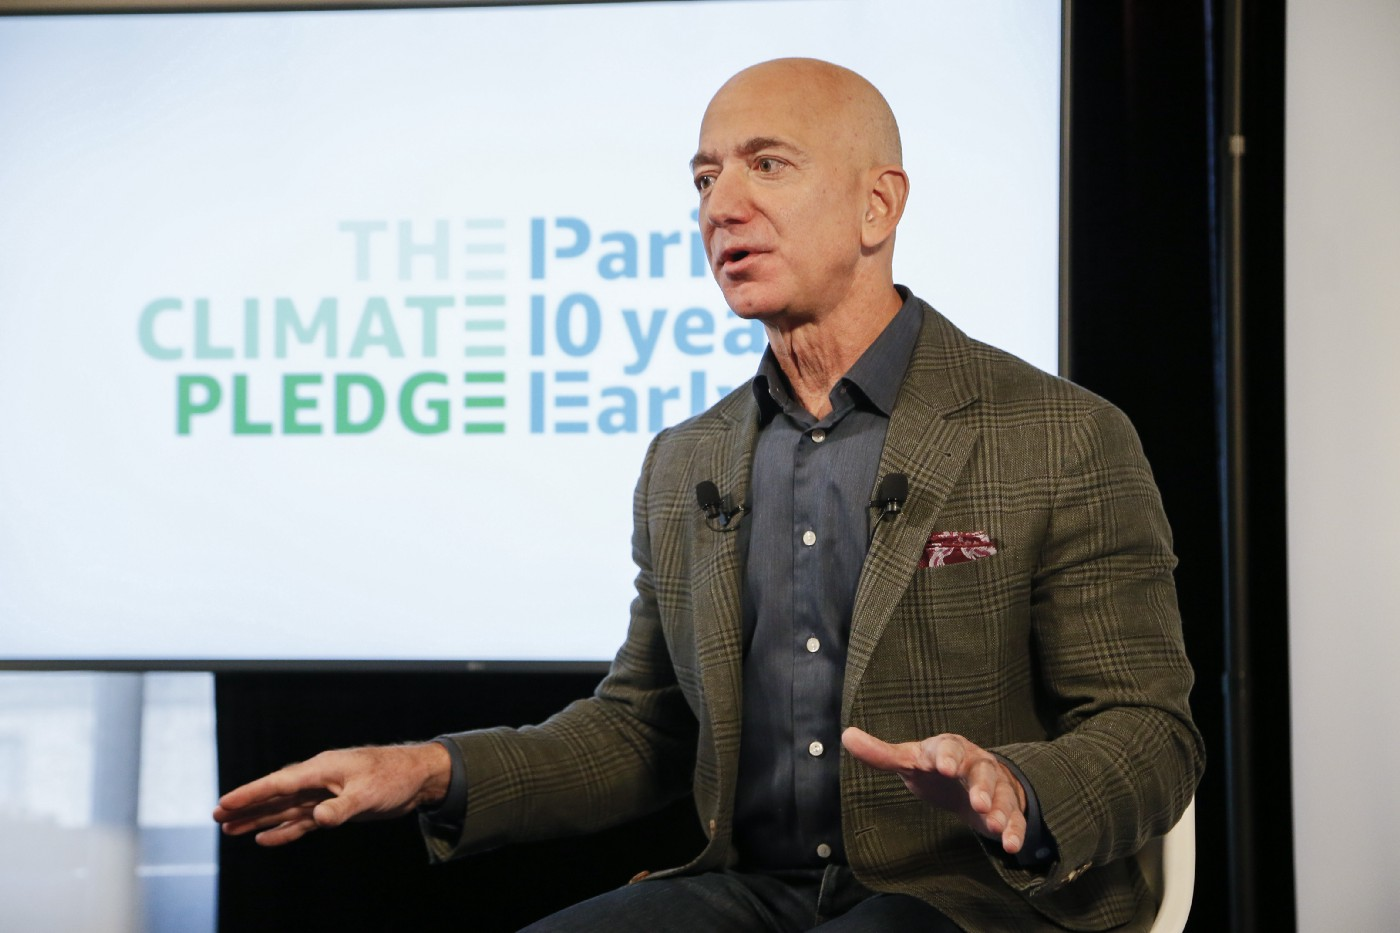 Amazon CEO Jeff Bezos announced the co-founding of The Climate Pledge at the National Press Club on September 19, 2019.